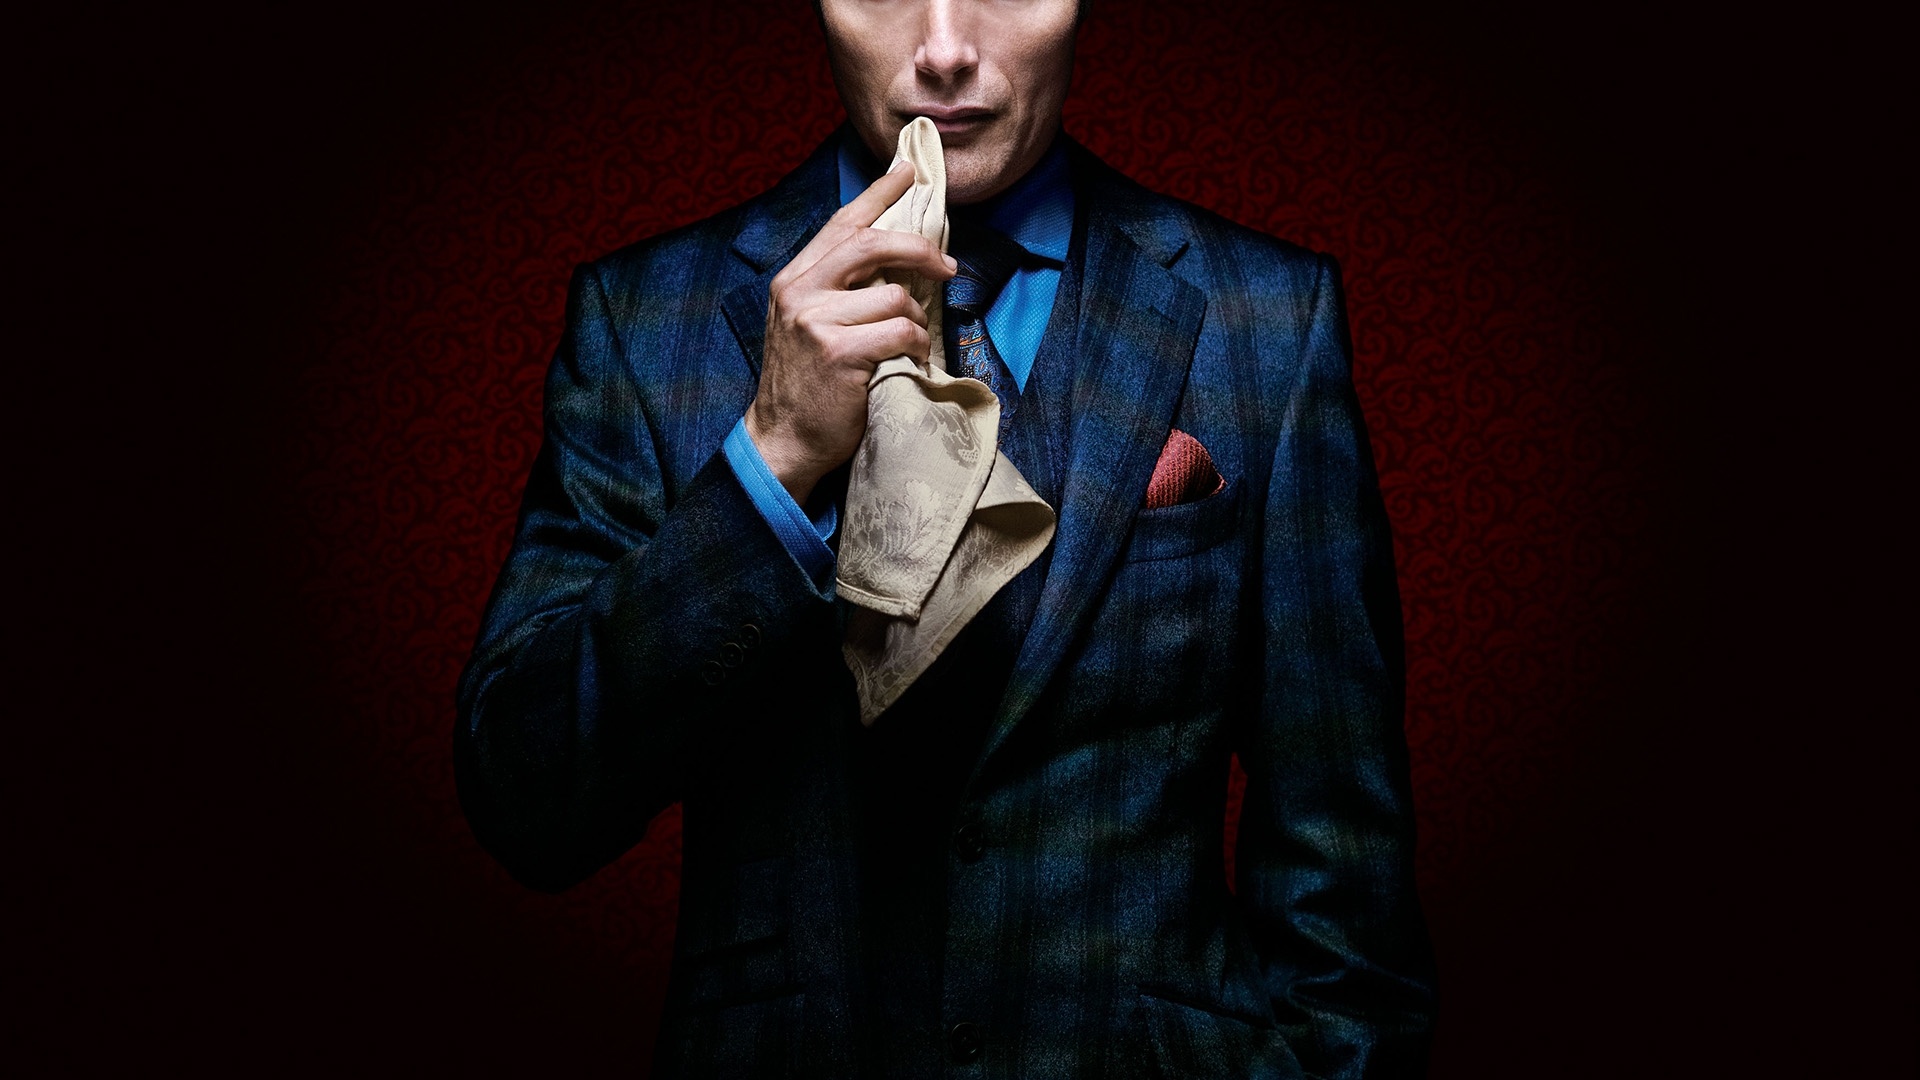 hannibal wallpapers high quality download free